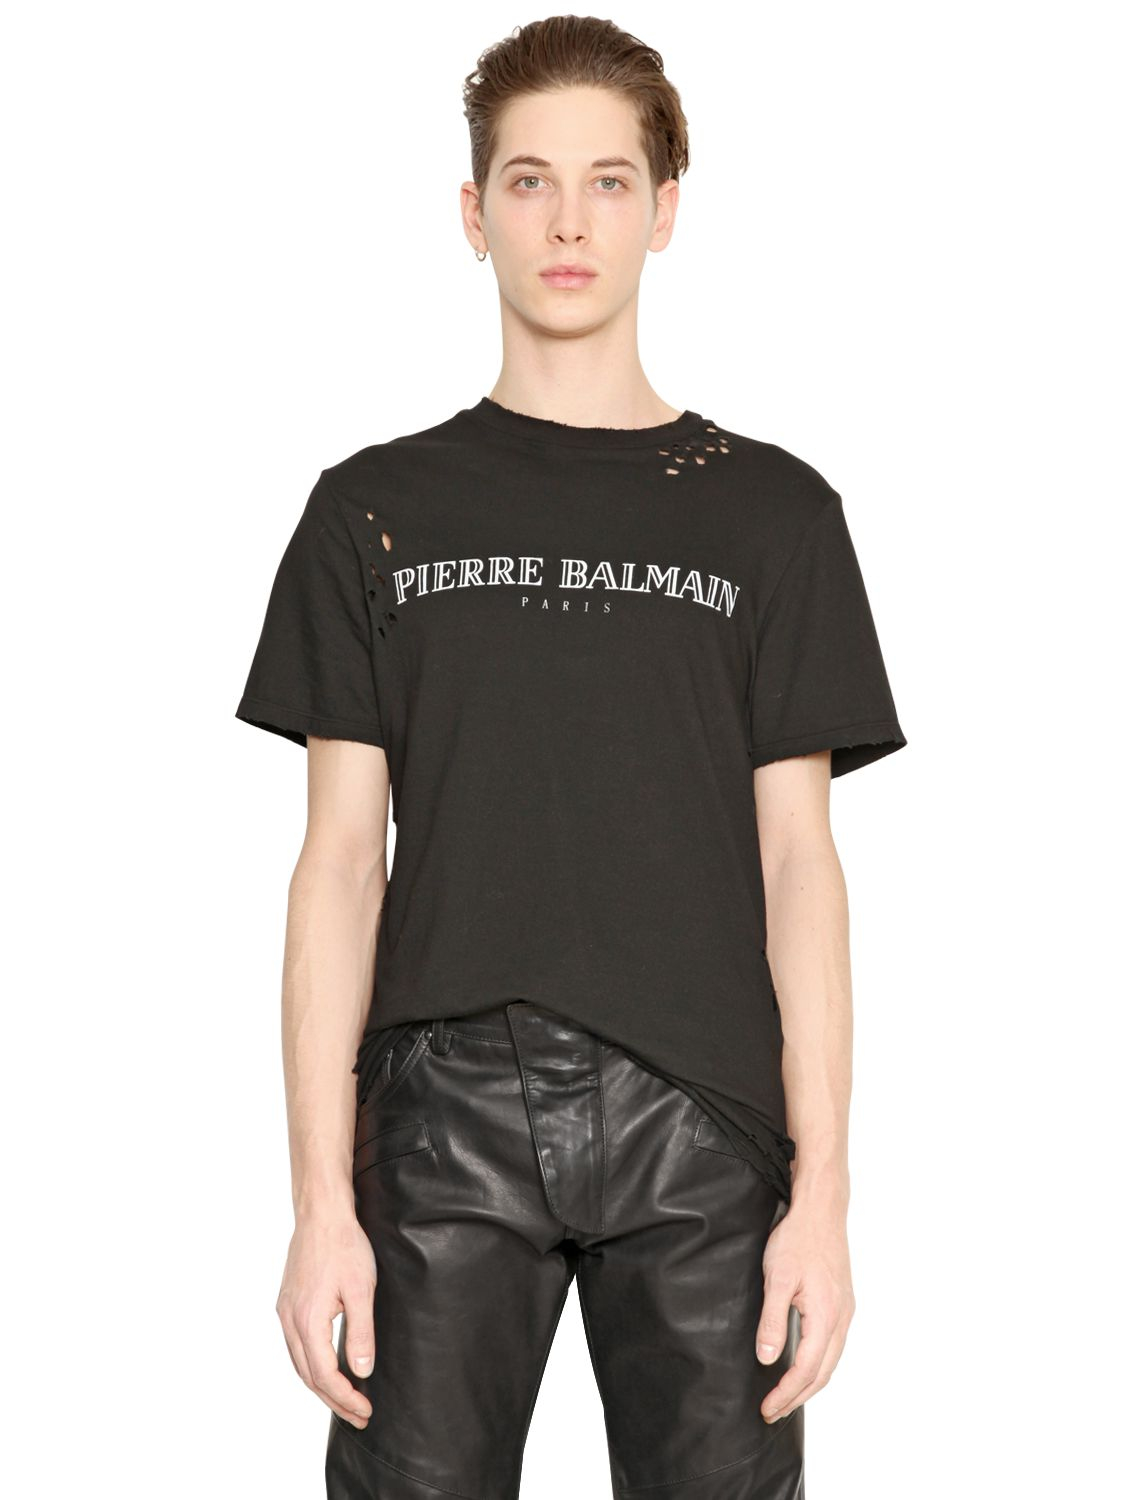 balmain logo printed cotton jersey t shirt in black for men lyst. Black Bedroom Furniture Sets. Home Design Ideas